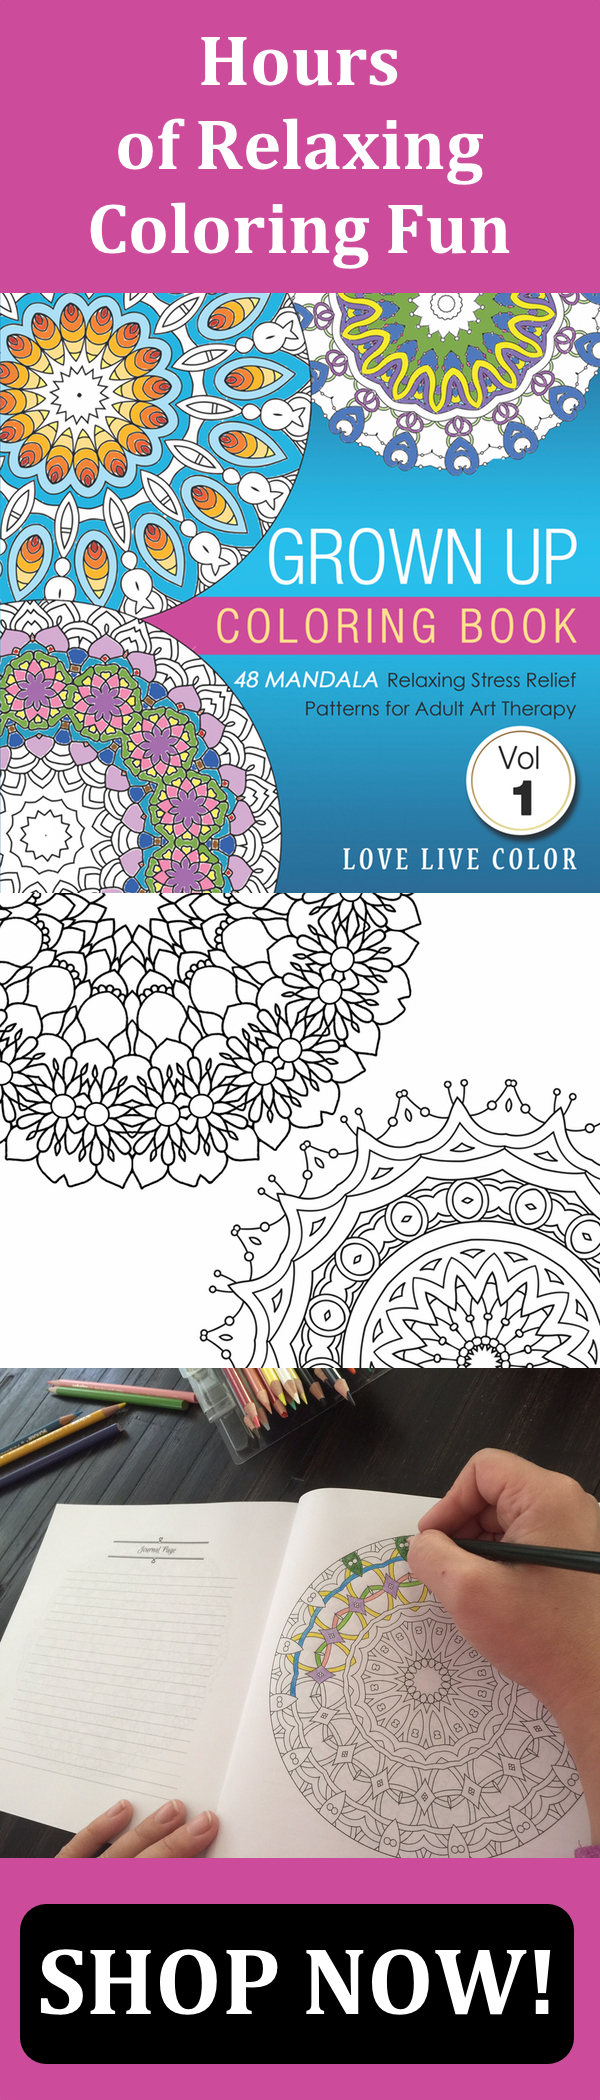 Stress relief coloring books disney - Disney Grown Up Coloring Book Do You Suffer From Stress Anxiety Or Creative Block This